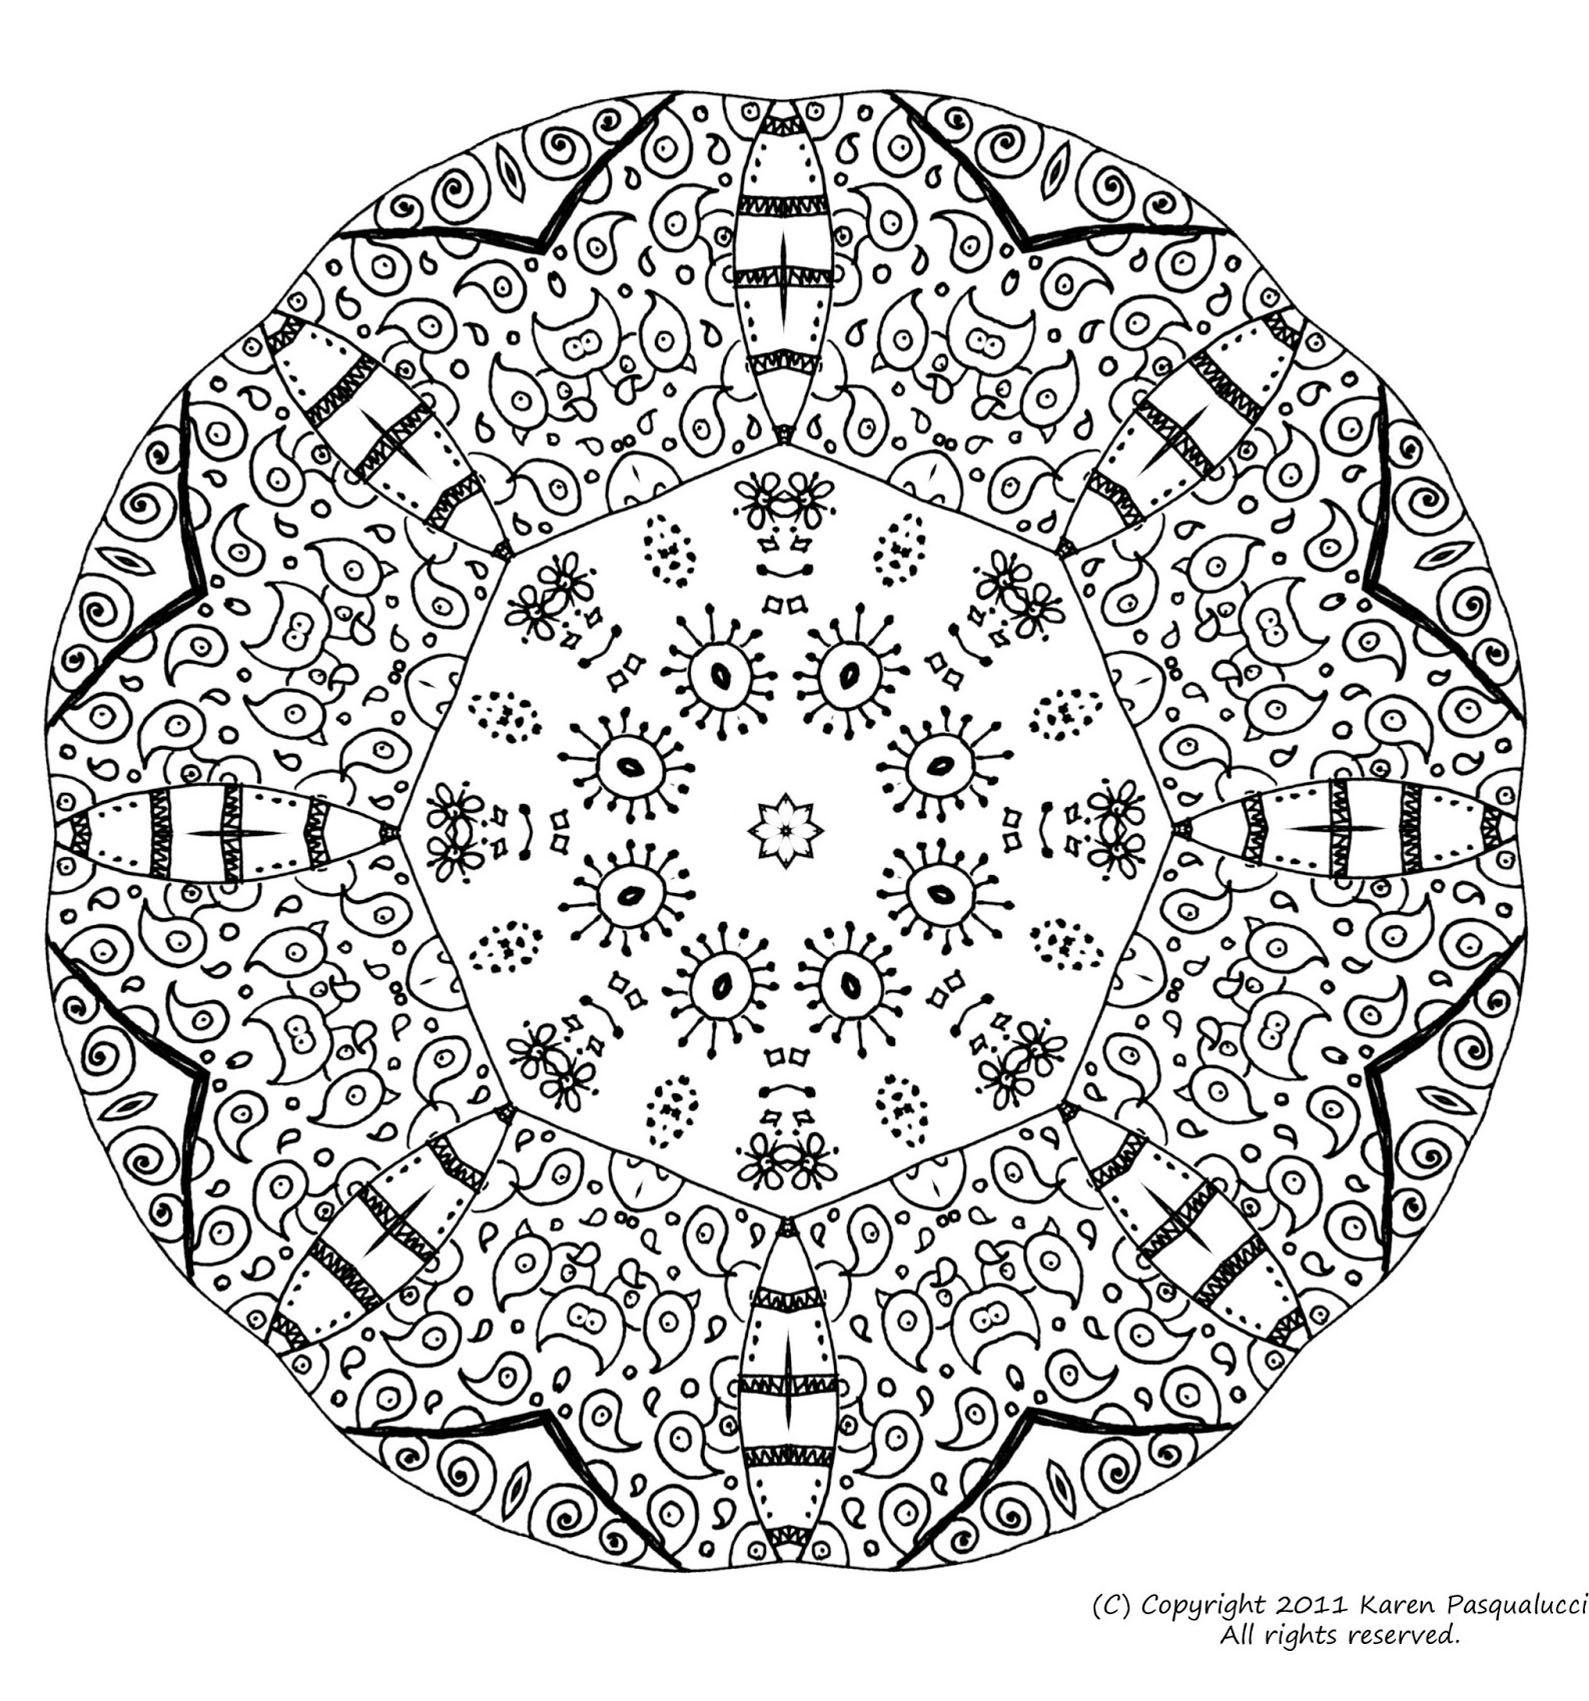 mandala 6 mandalas coloriages difficiles pour adultes. Black Bedroom Furniture Sets. Home Design Ideas